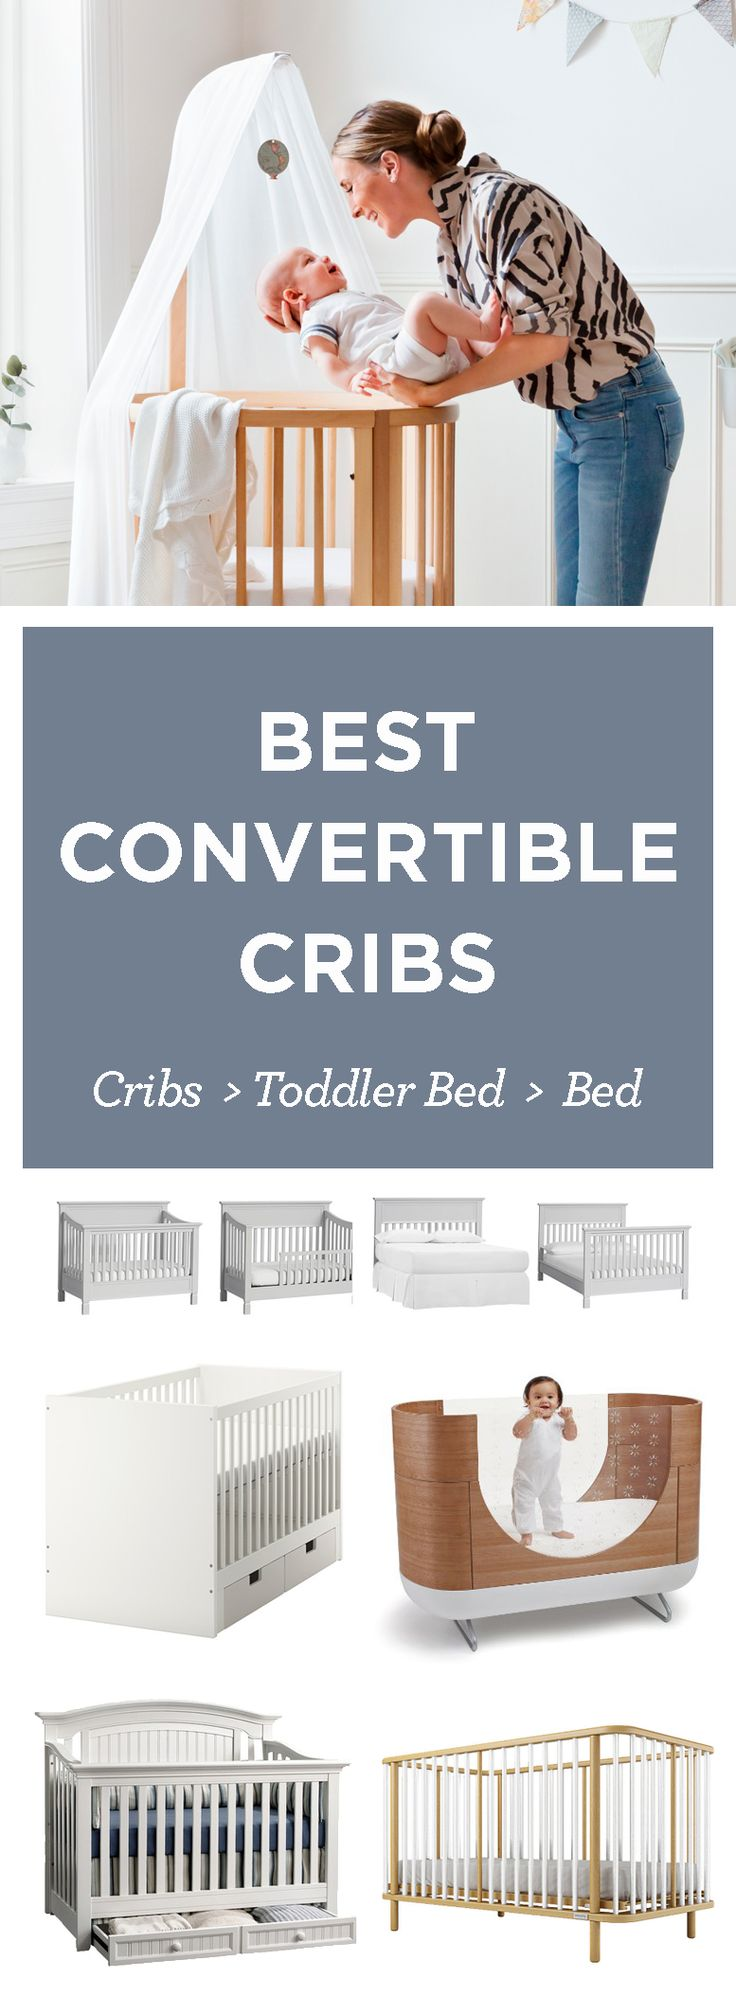 The best convertible baby cribs that convert to toddler beds so you get years of use out of it. From wood to white. Budget to splurge. via @pregnantchicken